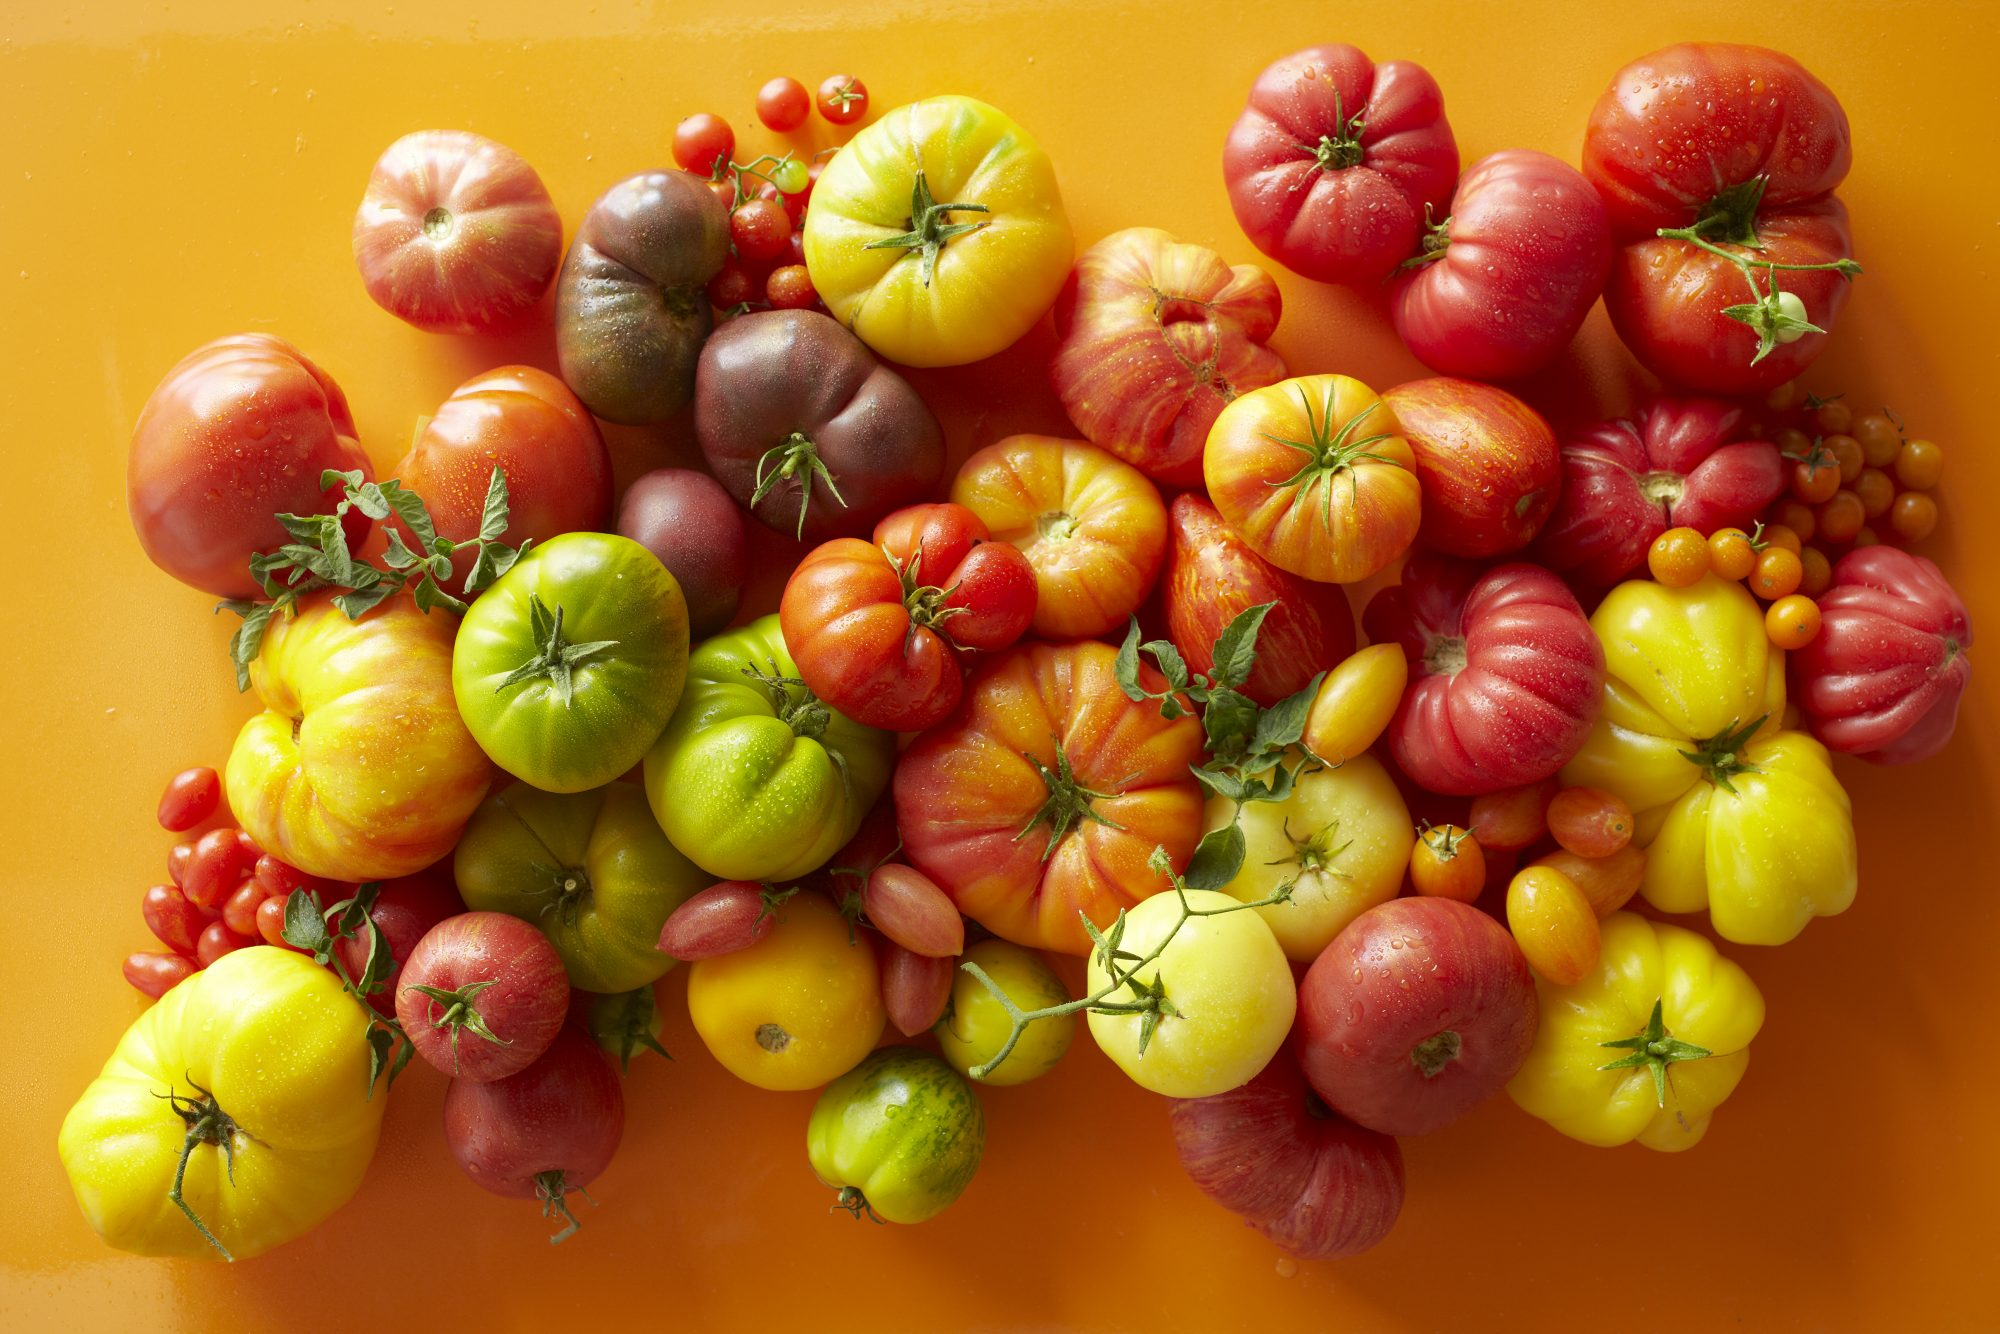 What Are Heirloom Tomatoes?